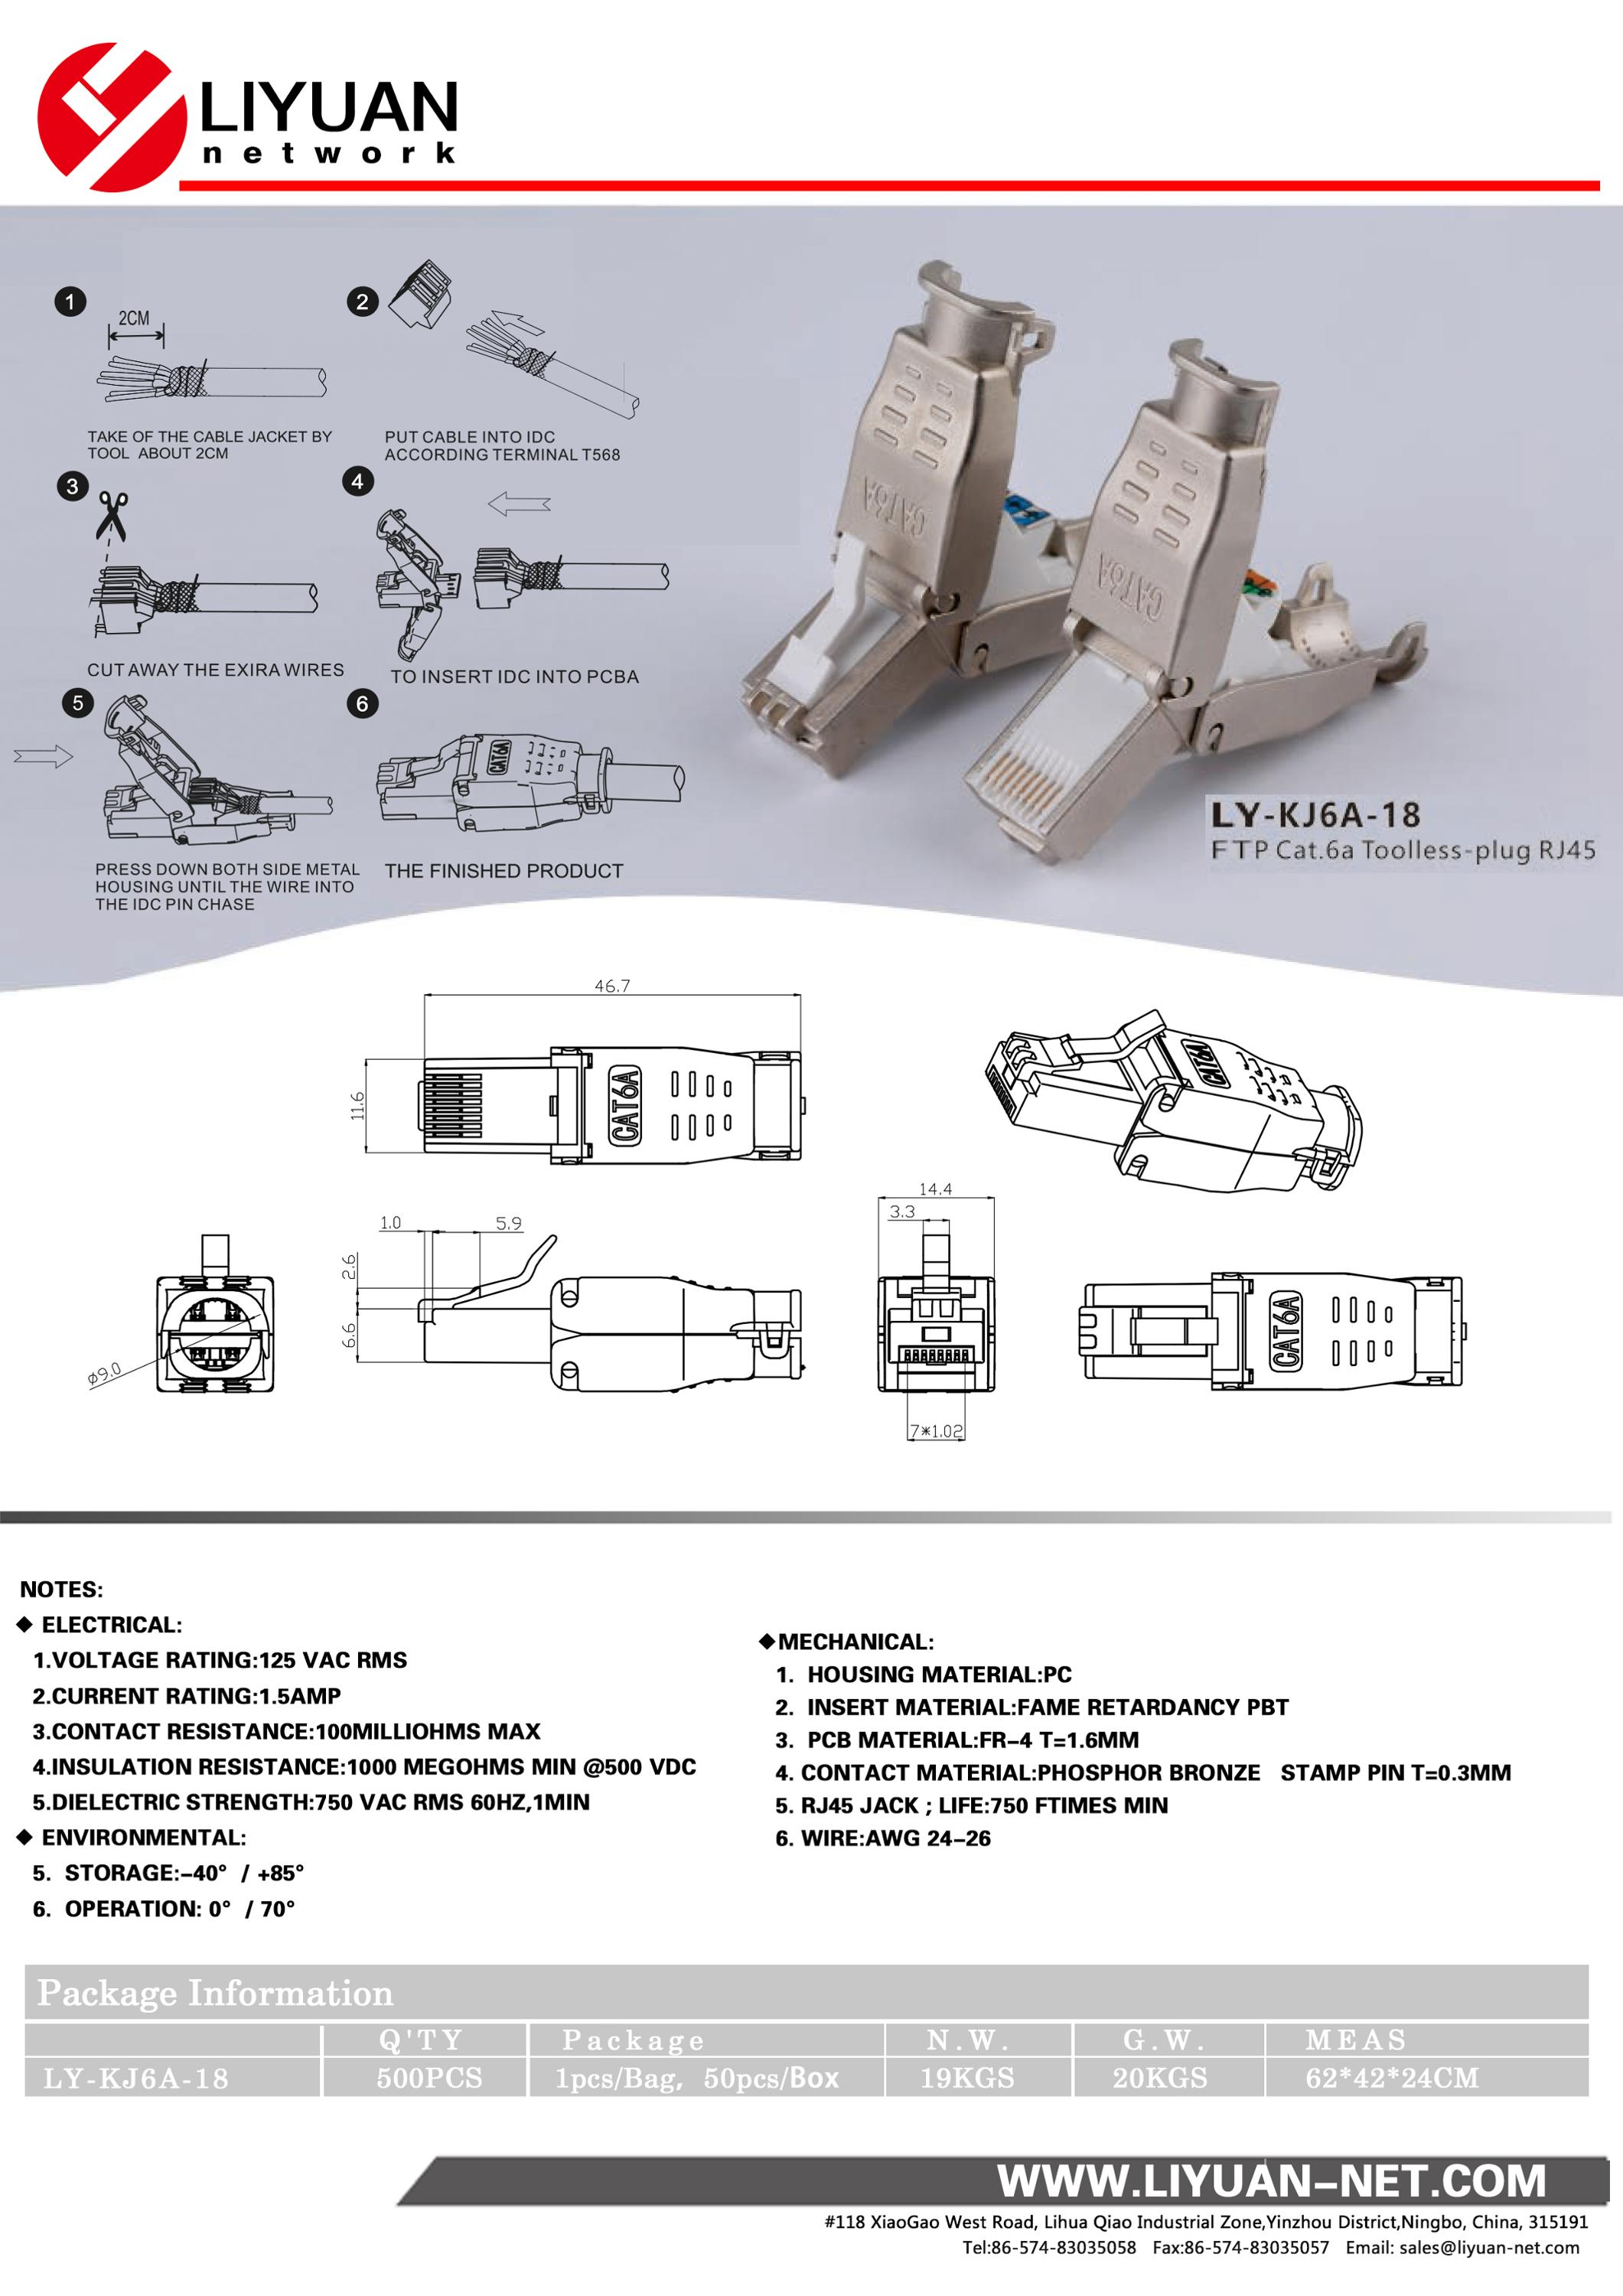 Ly Kj6a 18 High Quality Cat5e Cat6 Cat6a Rj45 Connector For Stranded Wire Diagram Solid Network